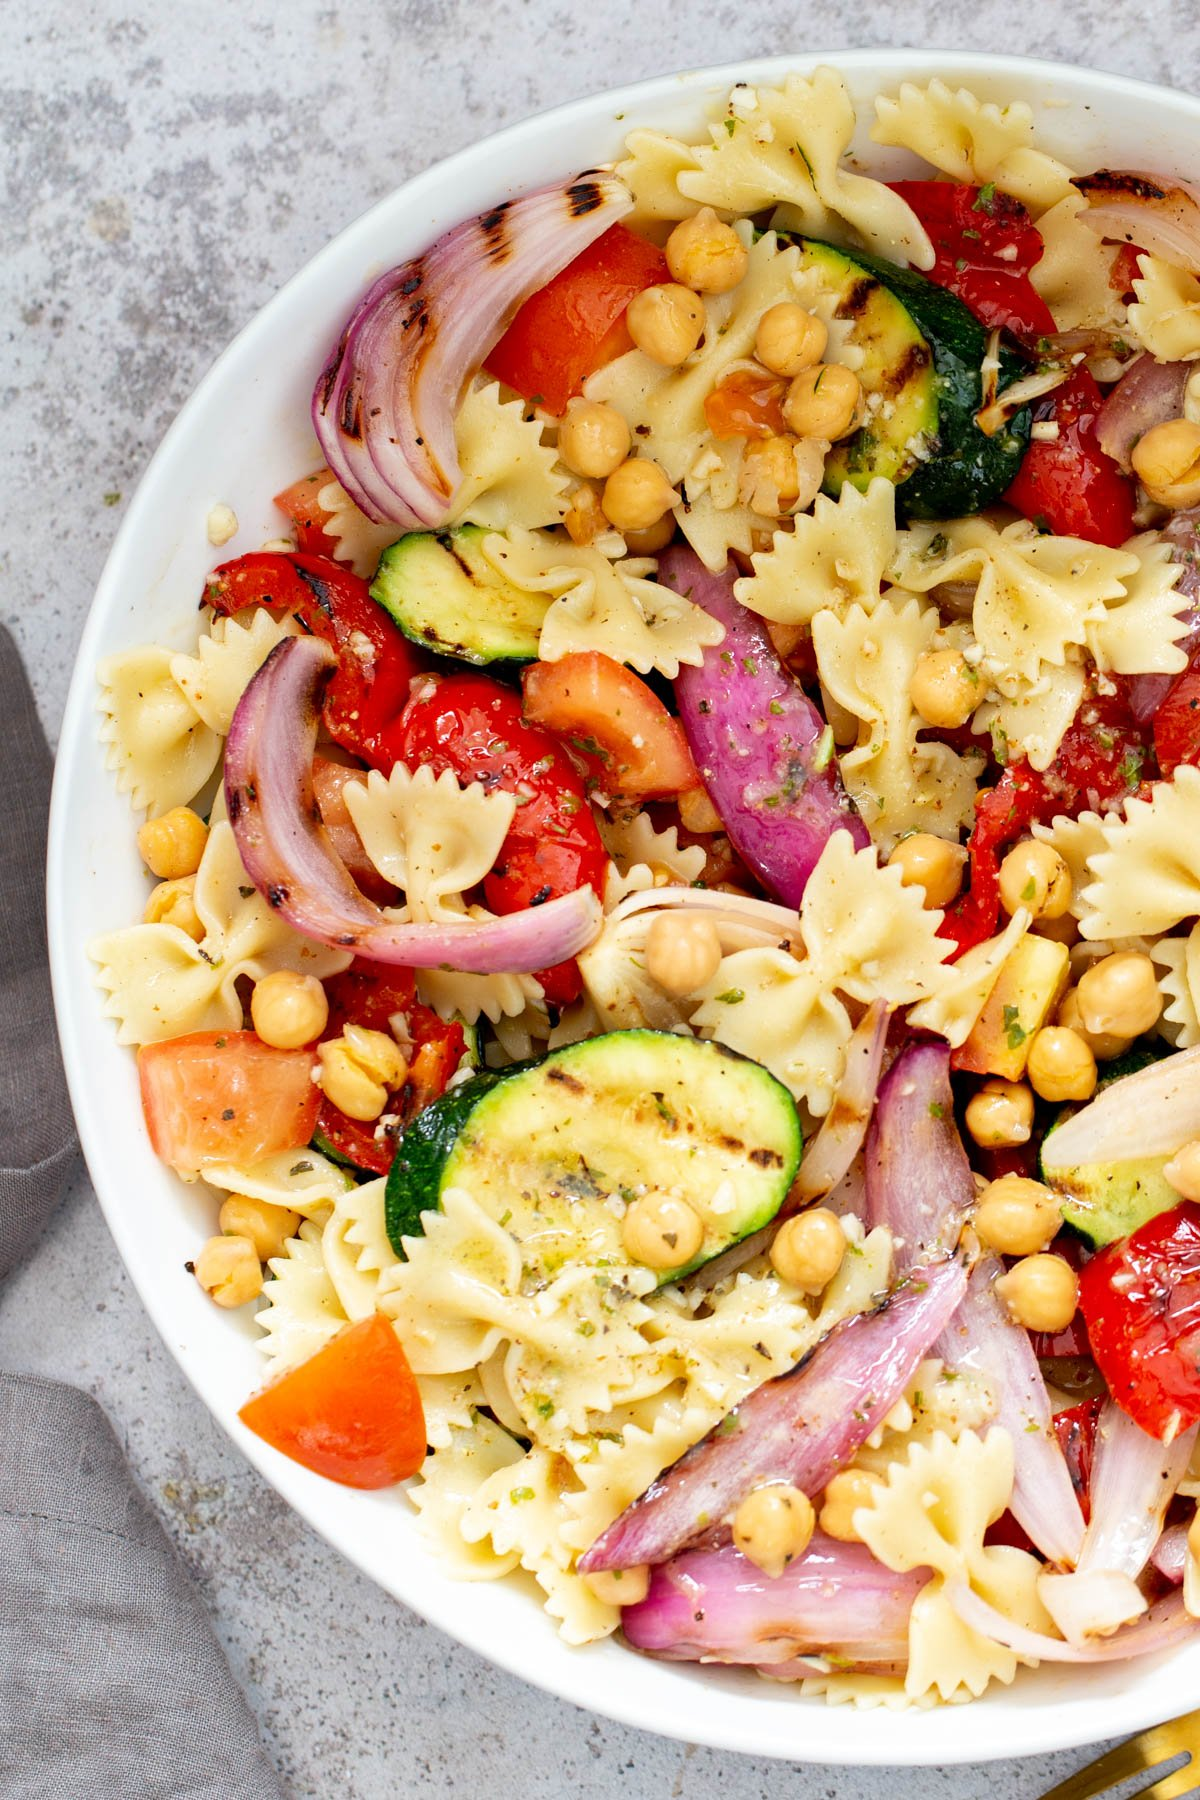 a bowl of vegan pasta salad with grilled vegetables, tomatoes and chickpeas